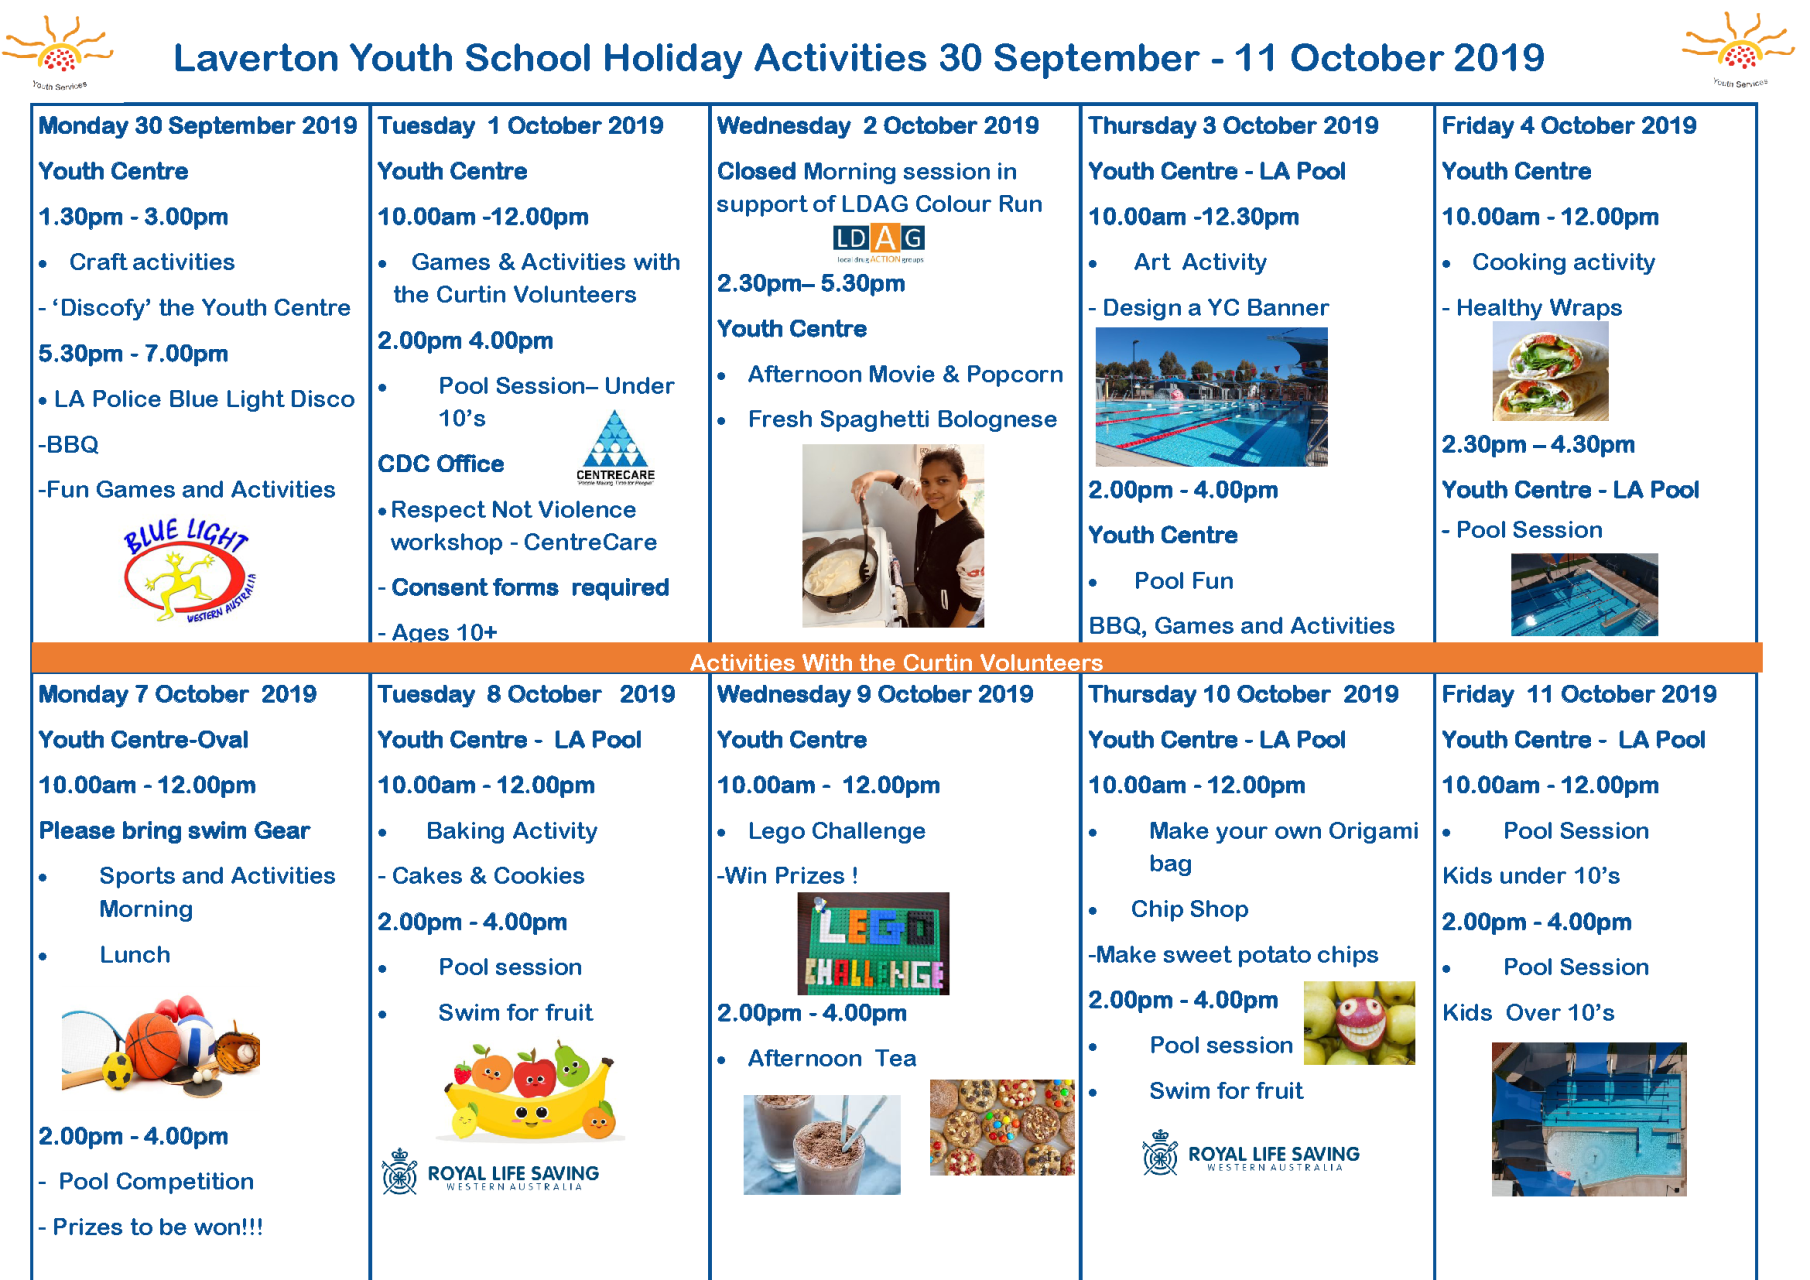 School Holiday Youth Centre Activities